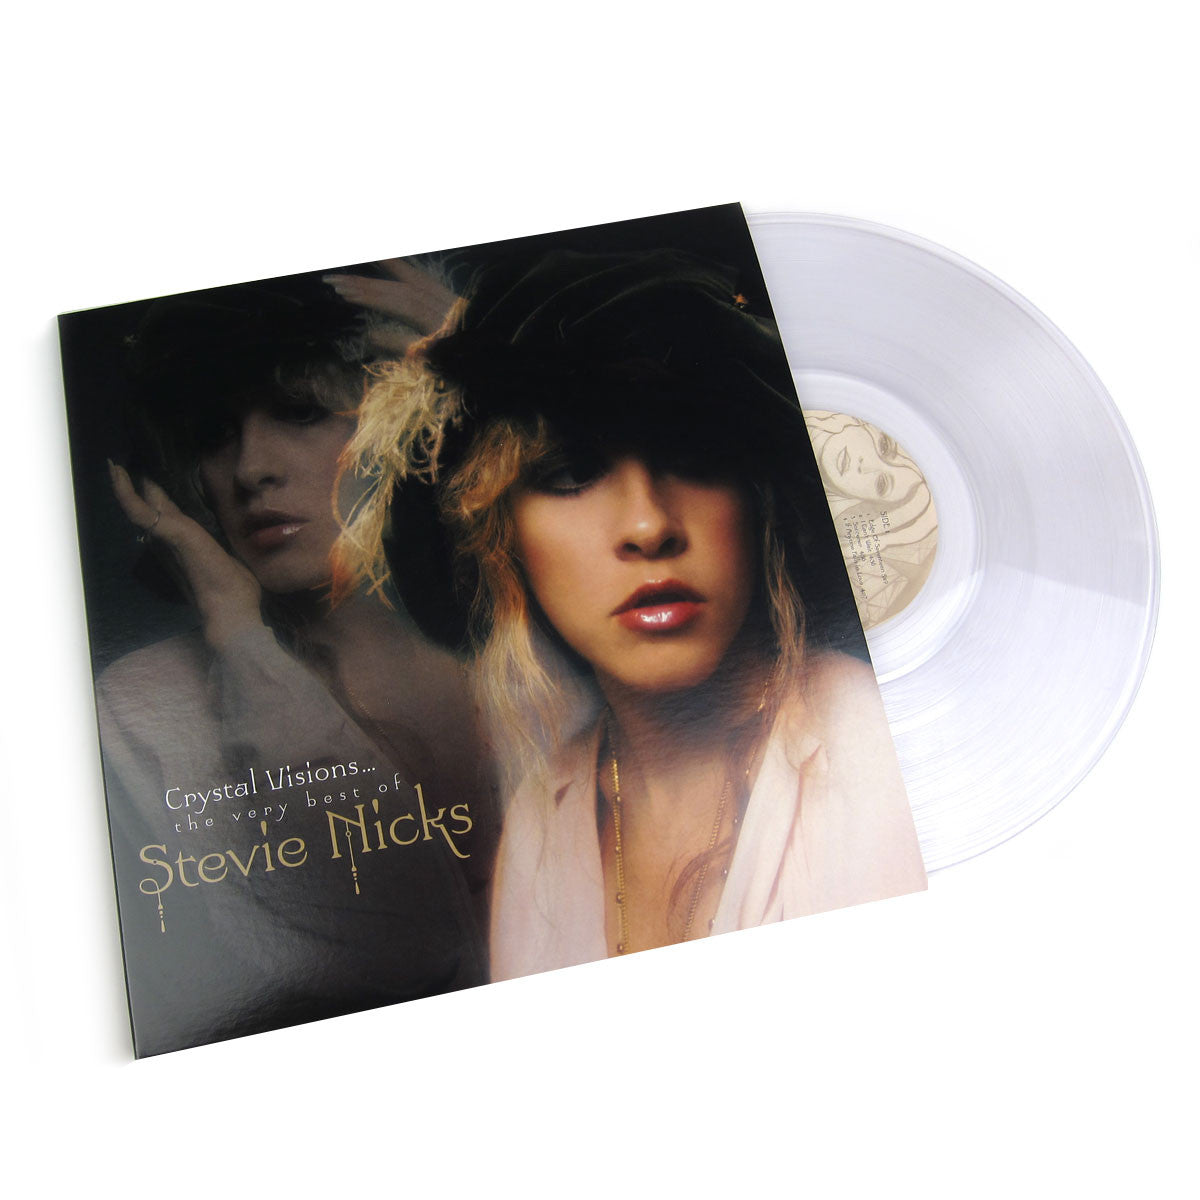 Stevie Nicks: Crystal Visions...The Very Best Of Stevie Nicks (Colored Vinyl) Vinyl 2LP